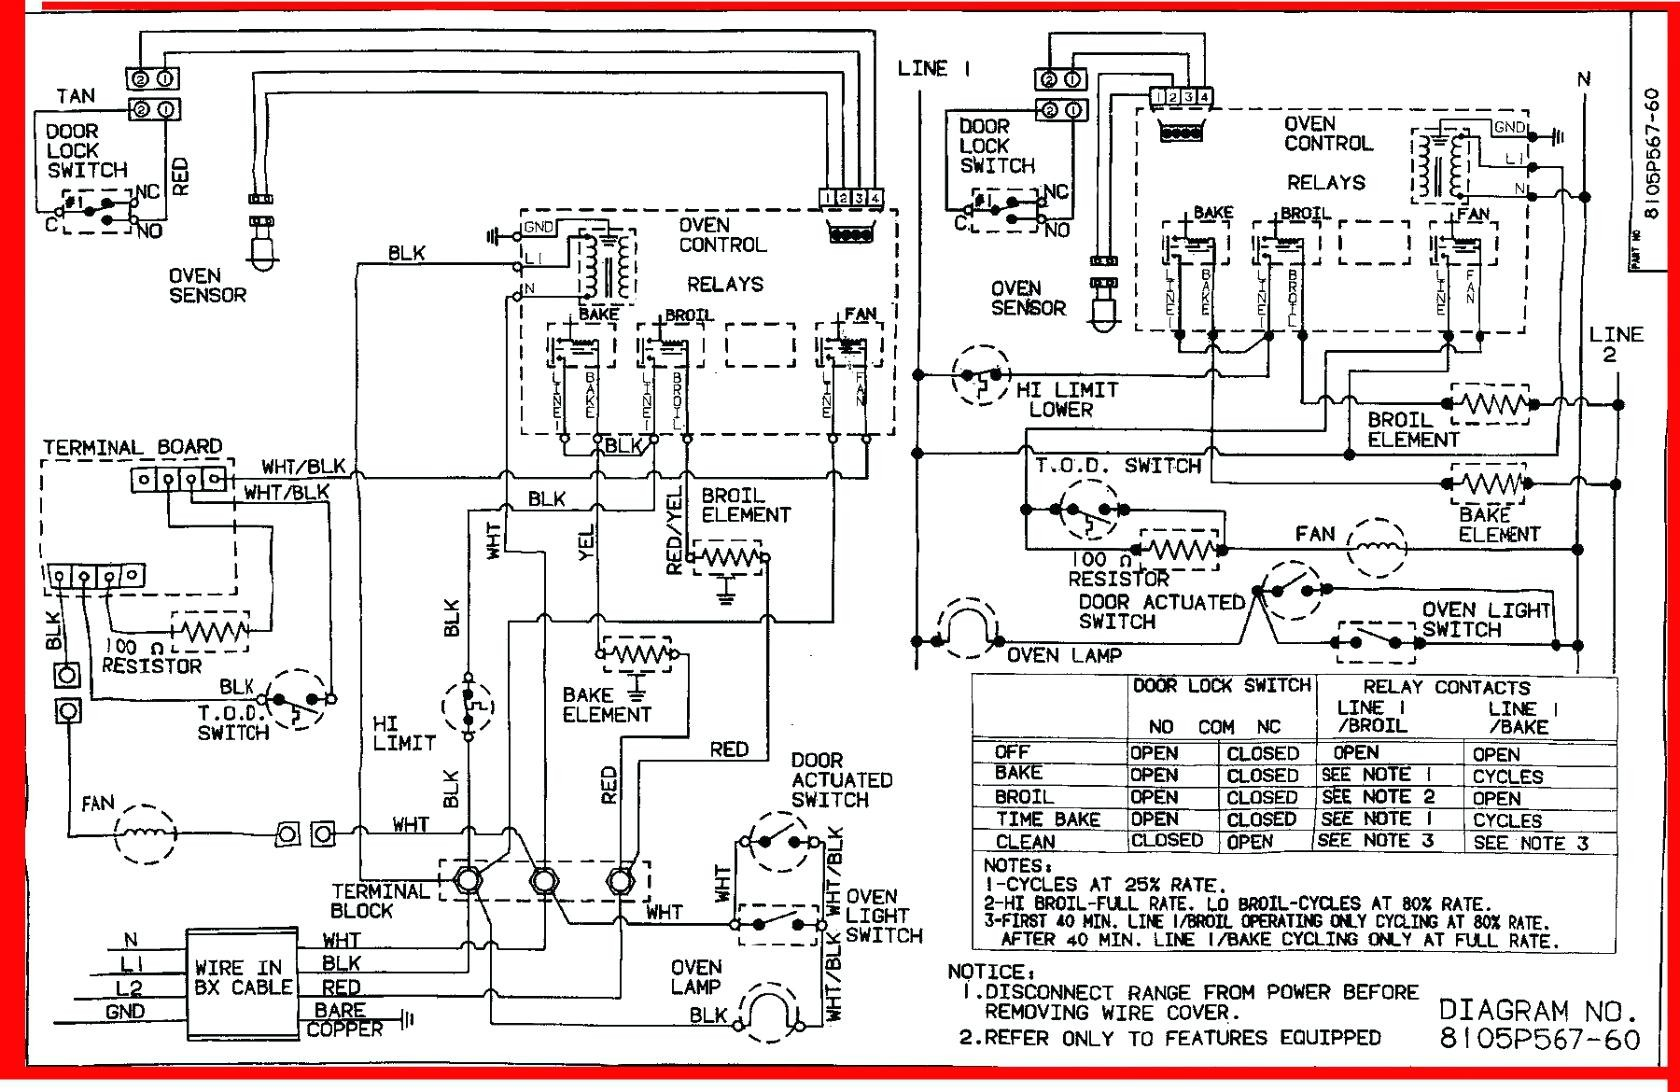 Full Size of True Freezer Model T 49f Wiring Diagram Walk In Troubleshooting Image Collections Free